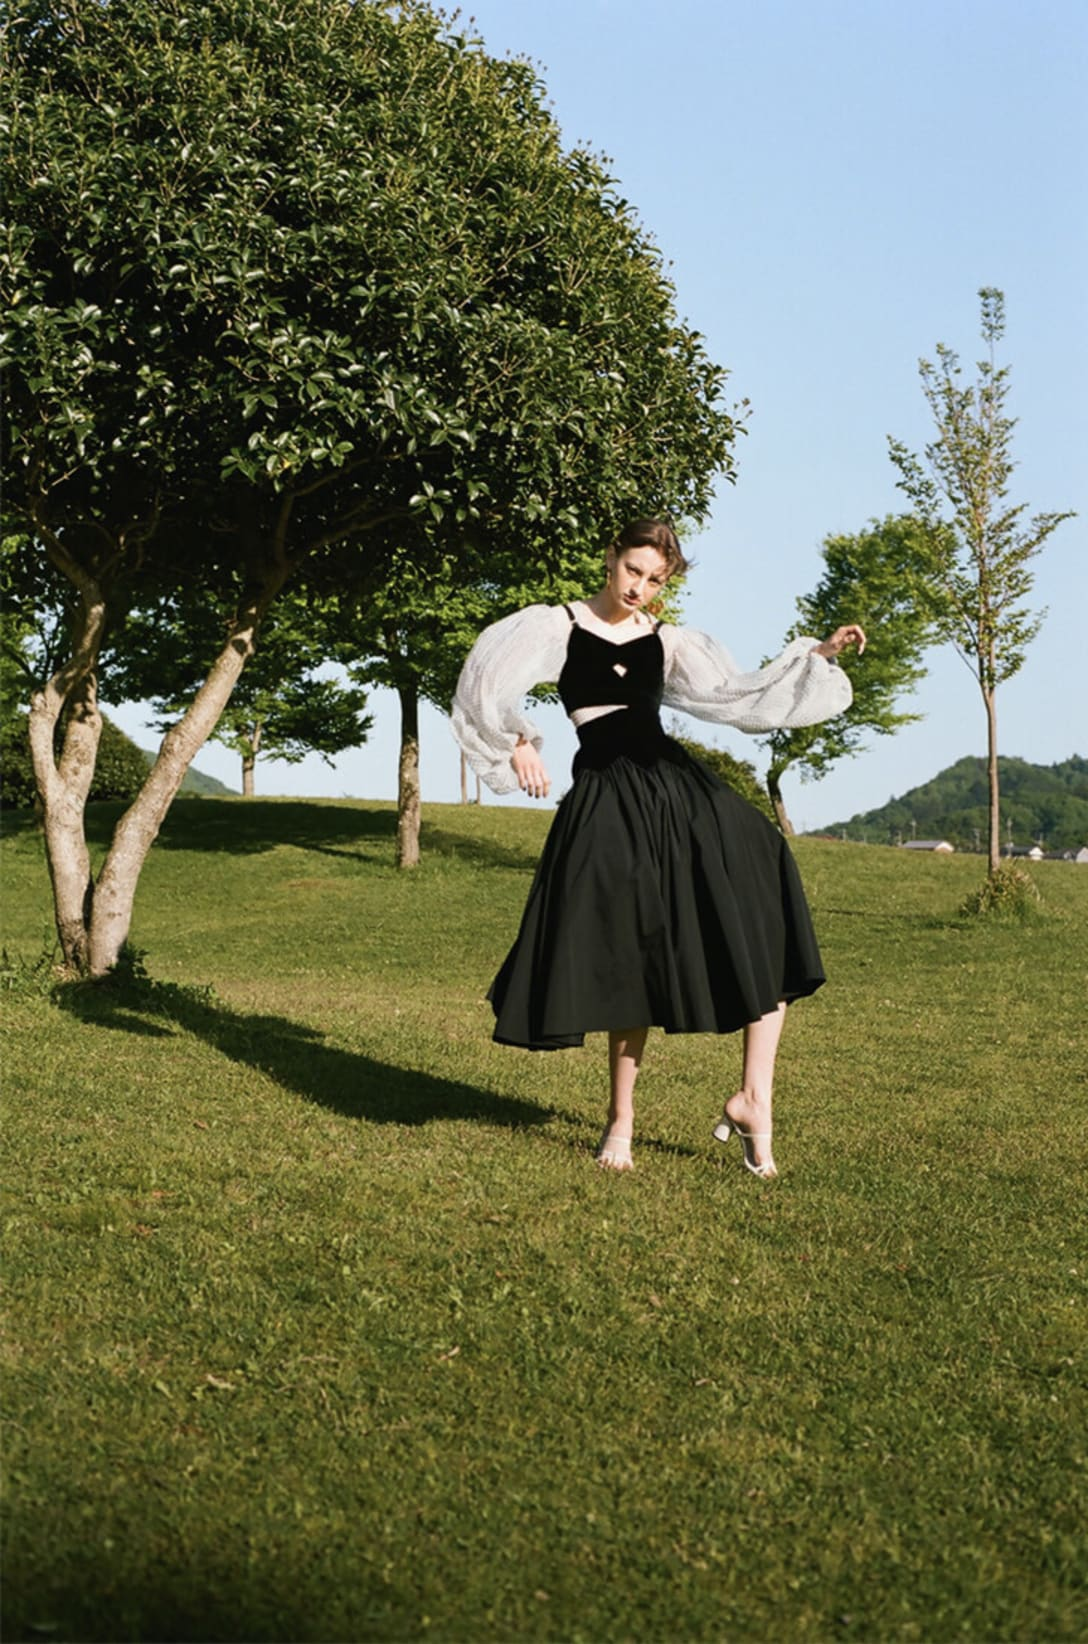 top and skirt by FETICO, dress by HIKARI MORIGAMI, shoes and earrings stylist's own